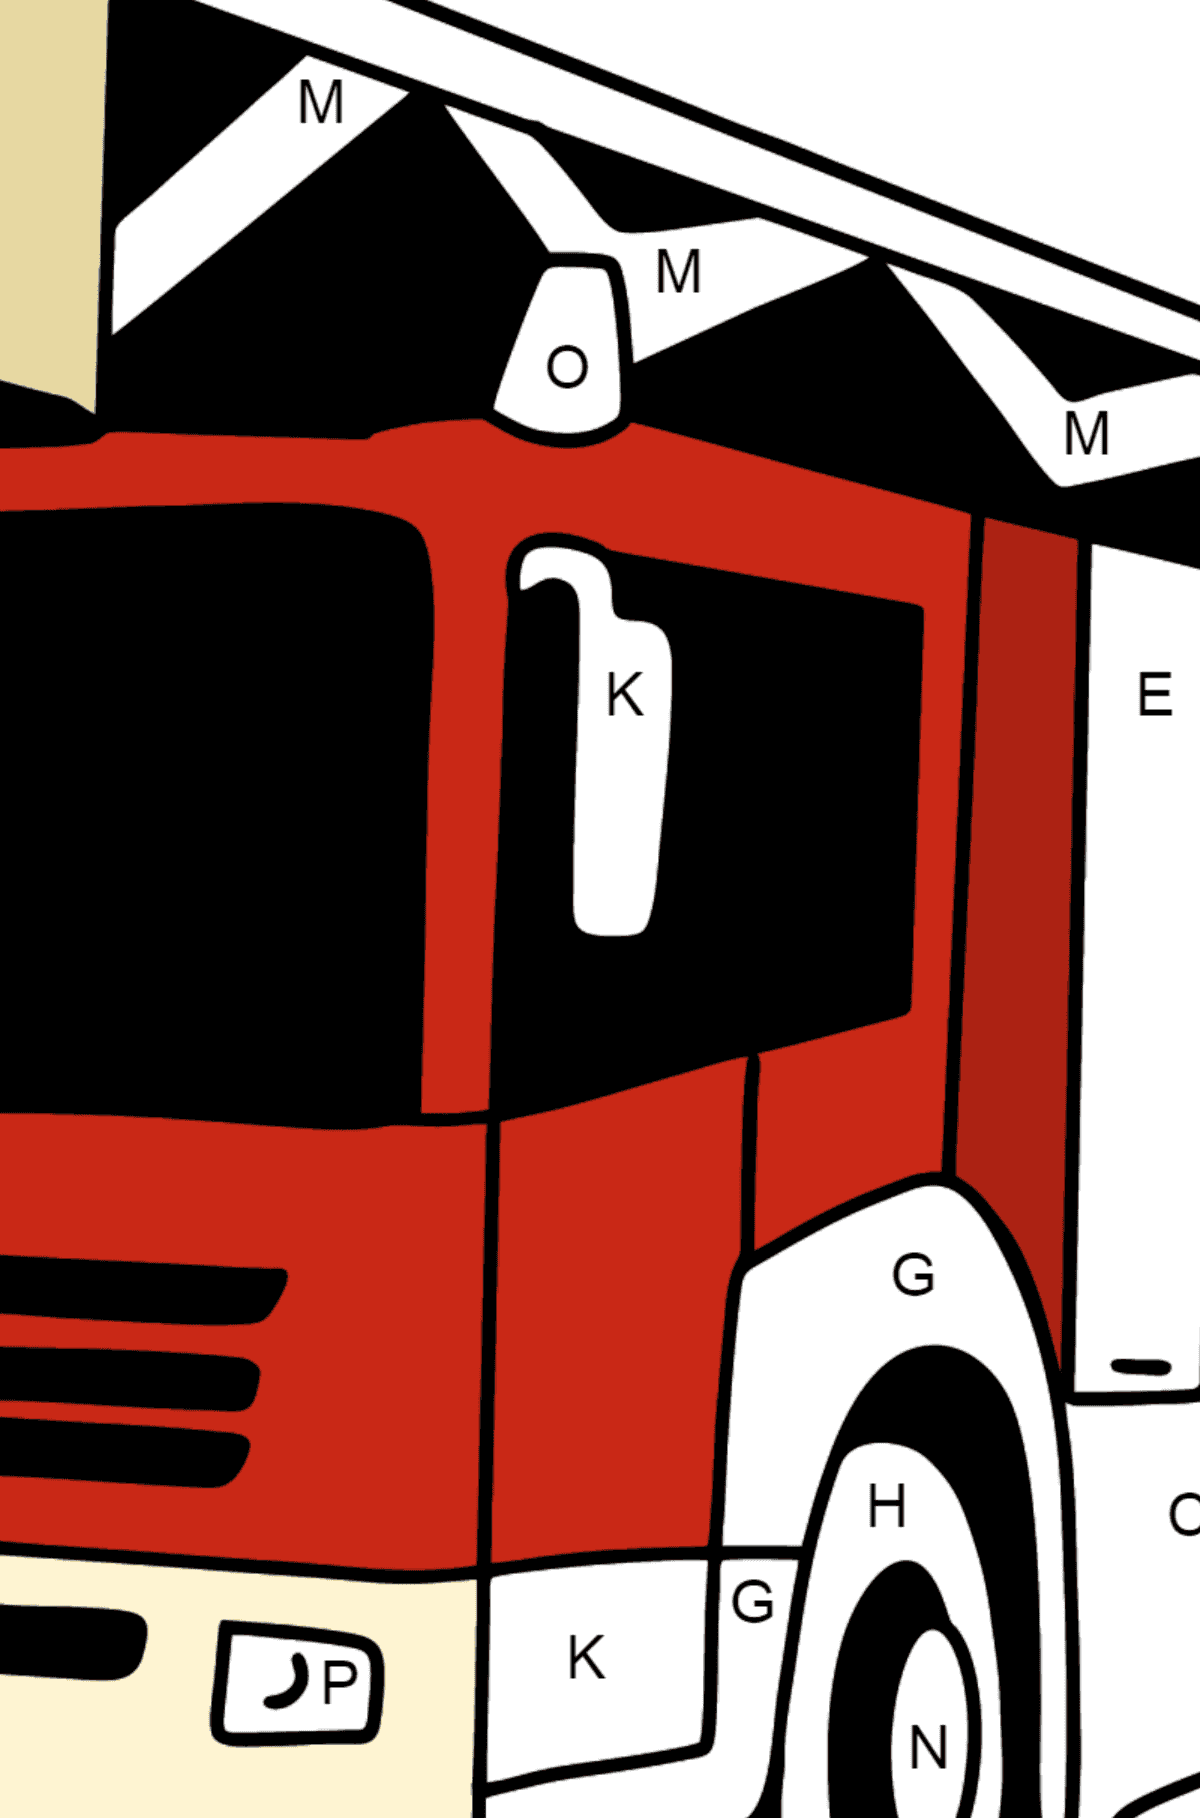 Fire Truck in Germany coloring page - Coloring by Letters for Kids